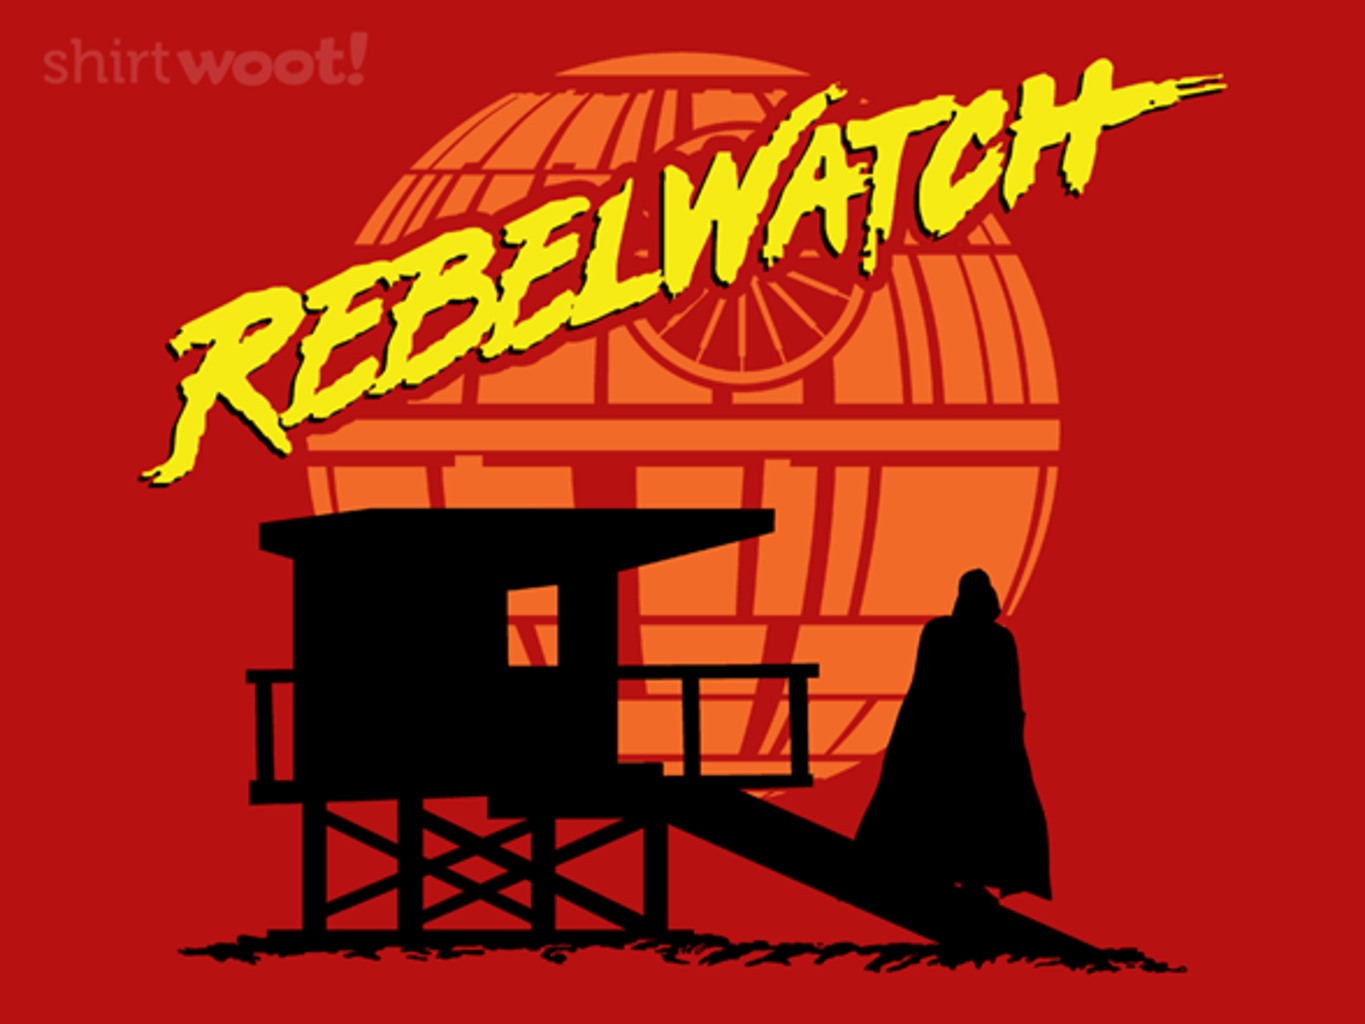 Woot!: Rebelwatch